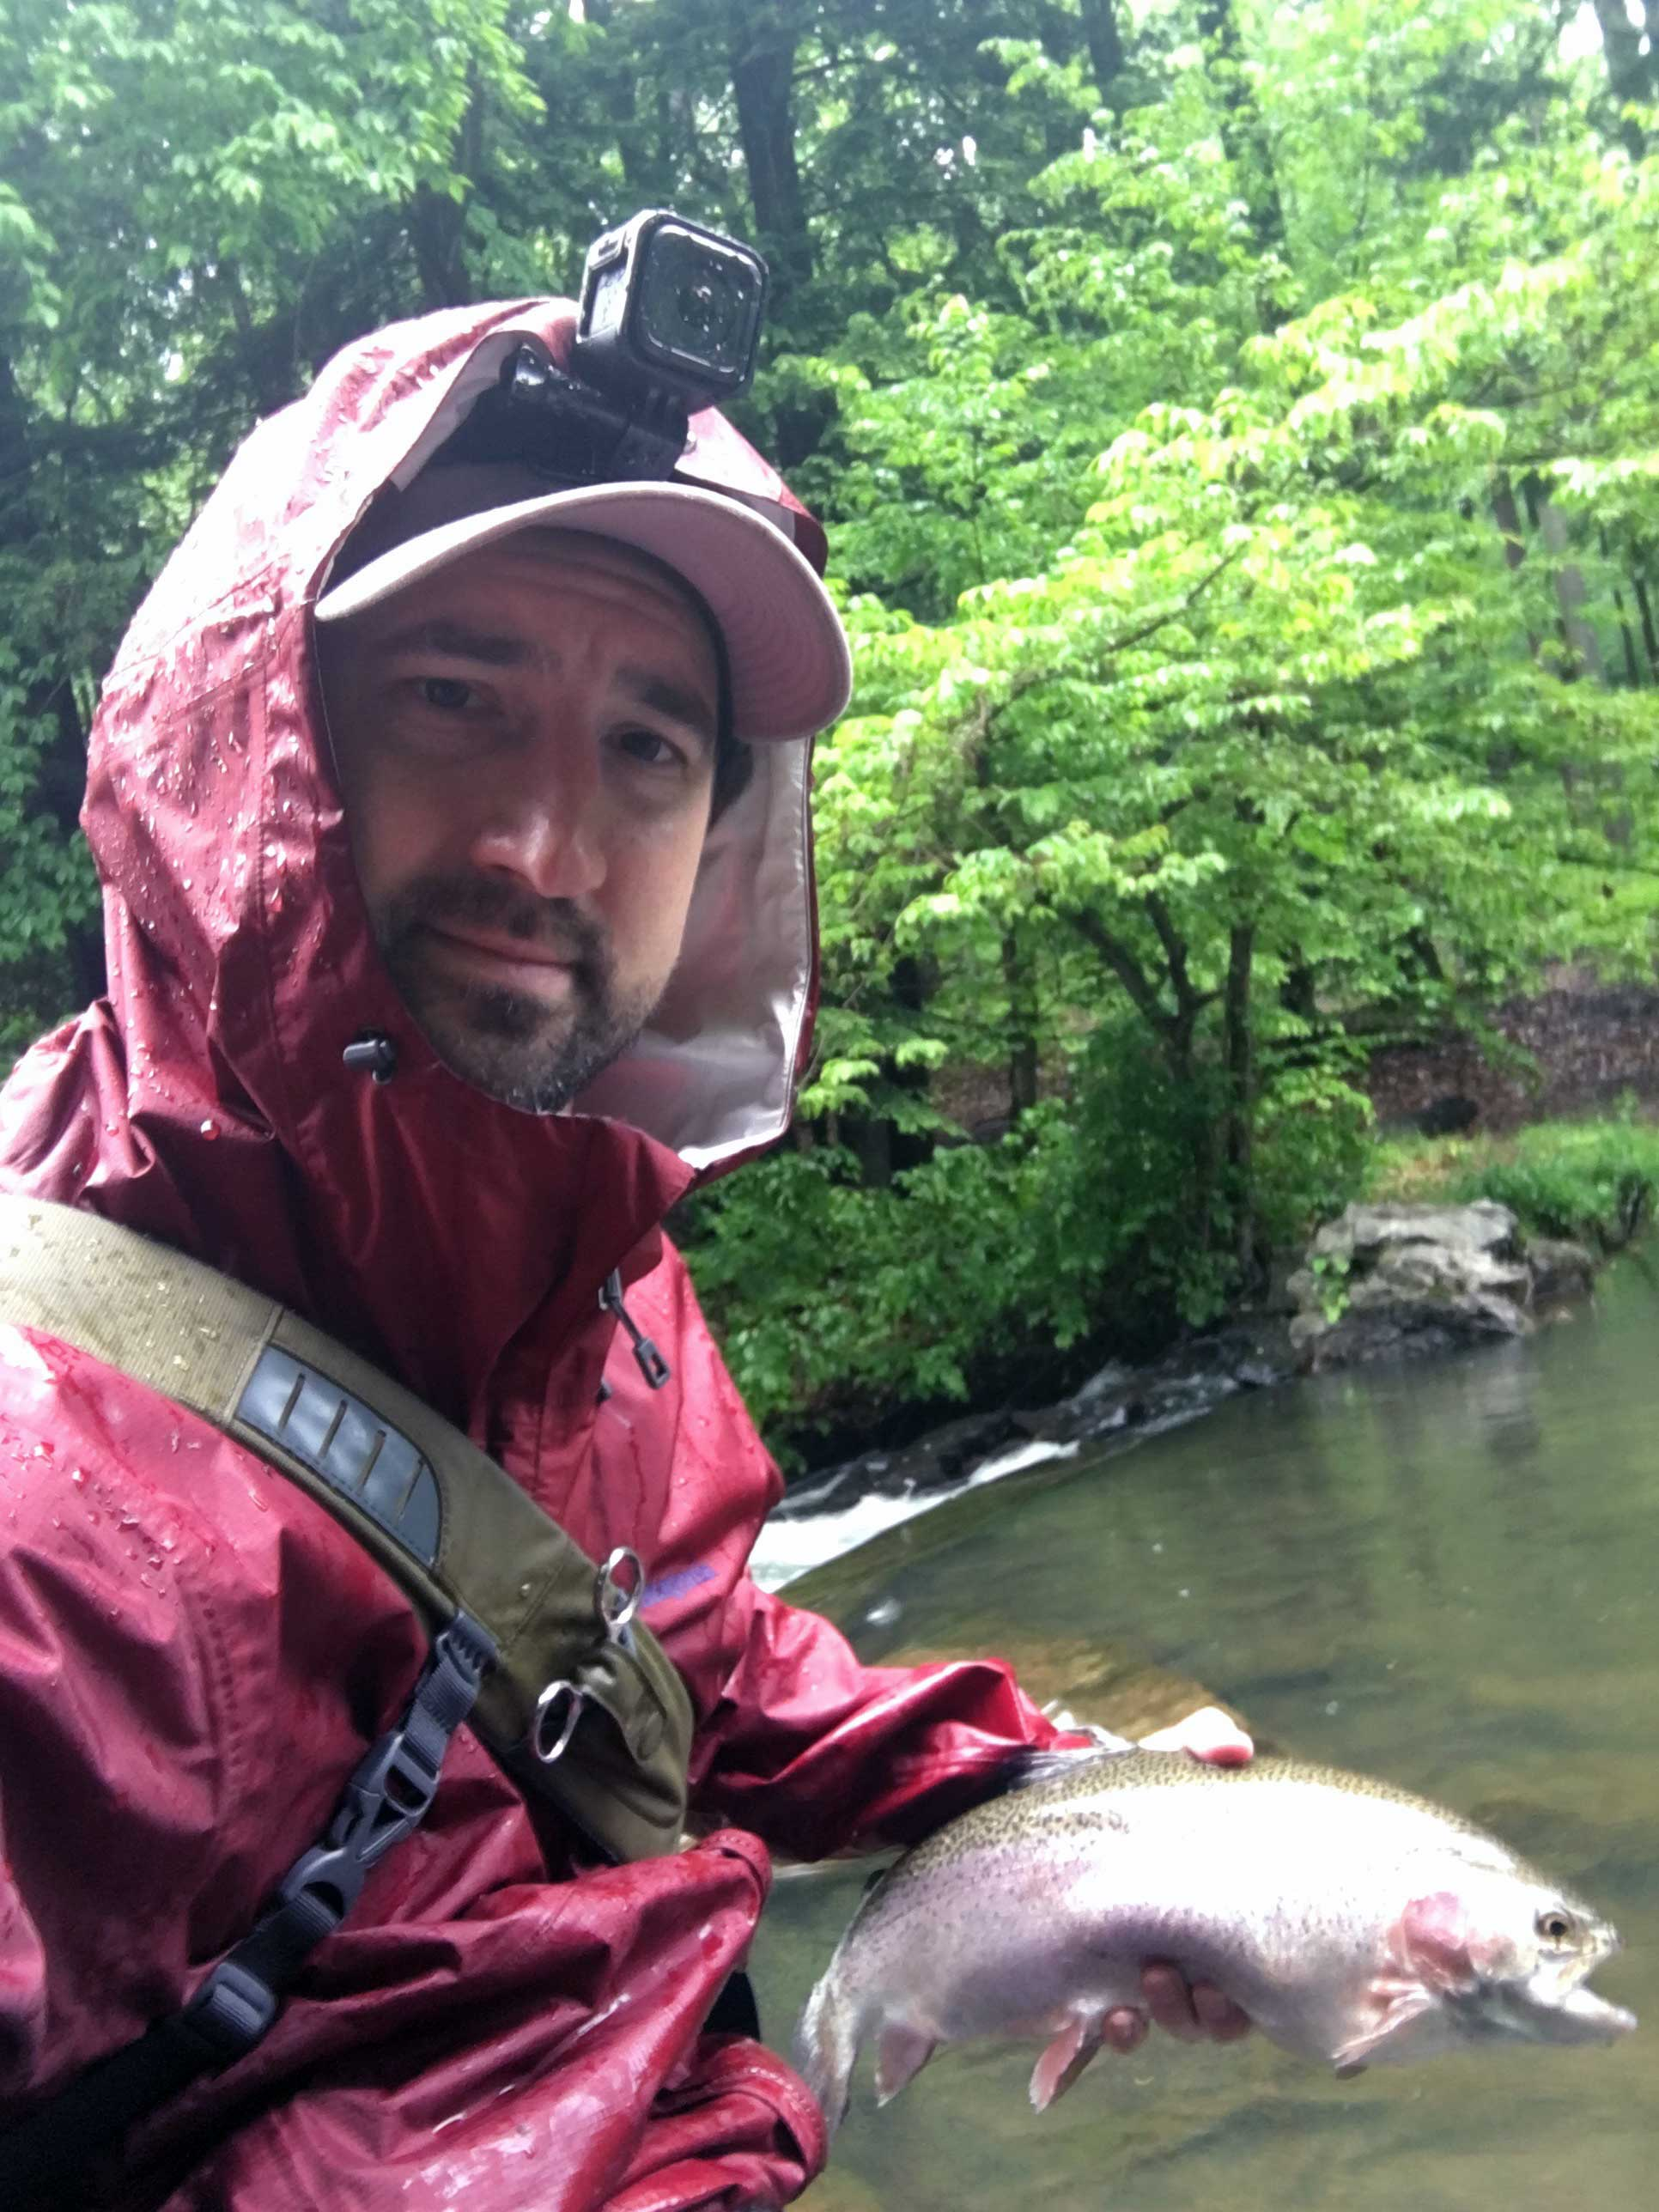 Fishing in the rain at Yellow Creek Trout Club was rewarding.